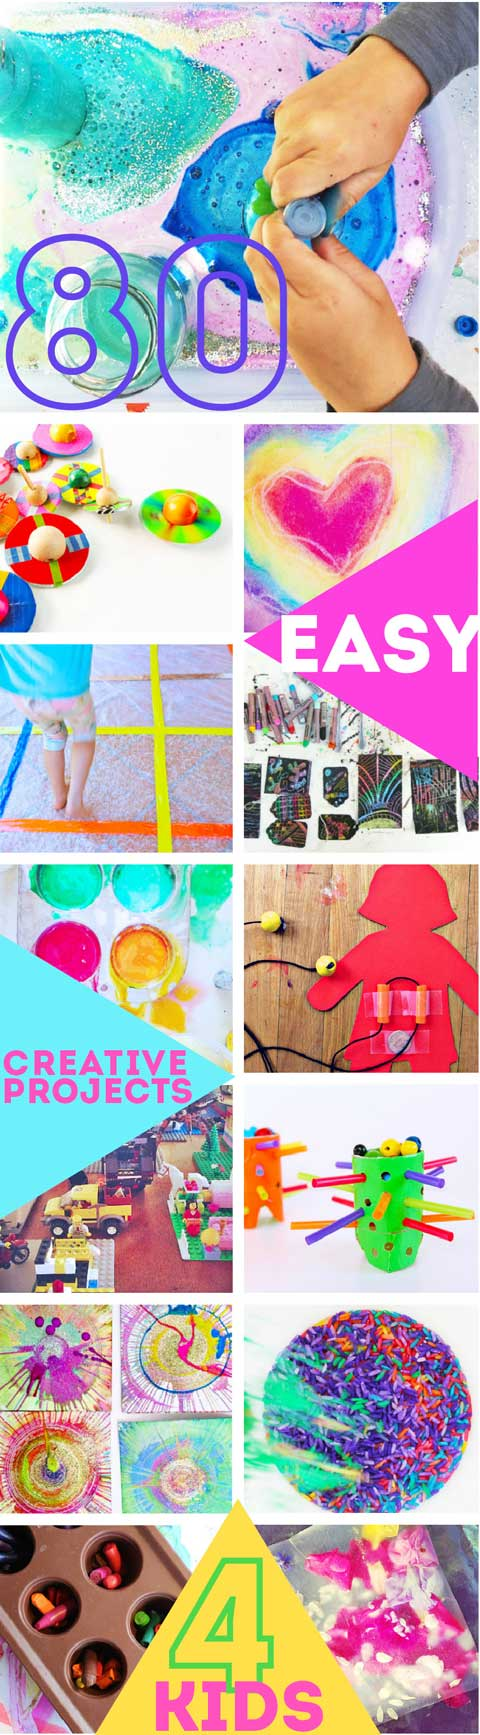 small resolution of 80 easy creative projects for kids including activities art crafts science engineering